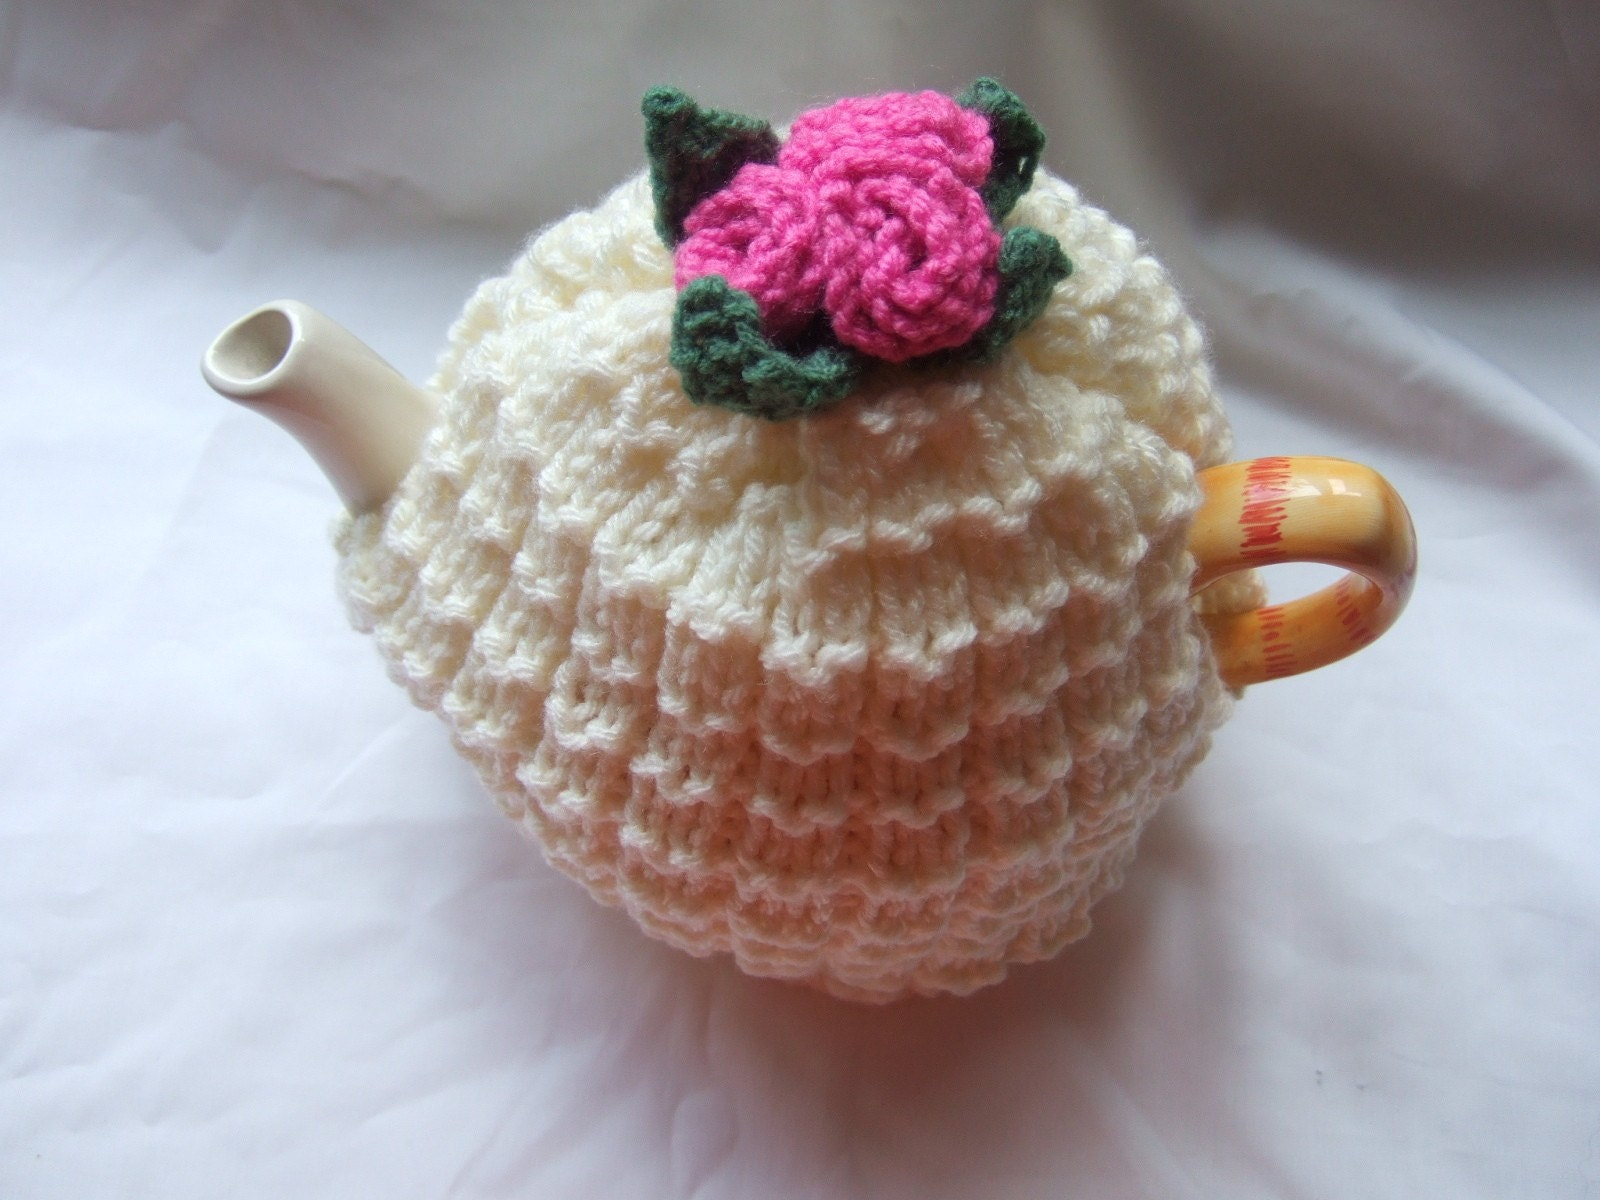 Items similar to rose tea cosy knitting pattern on Etsy